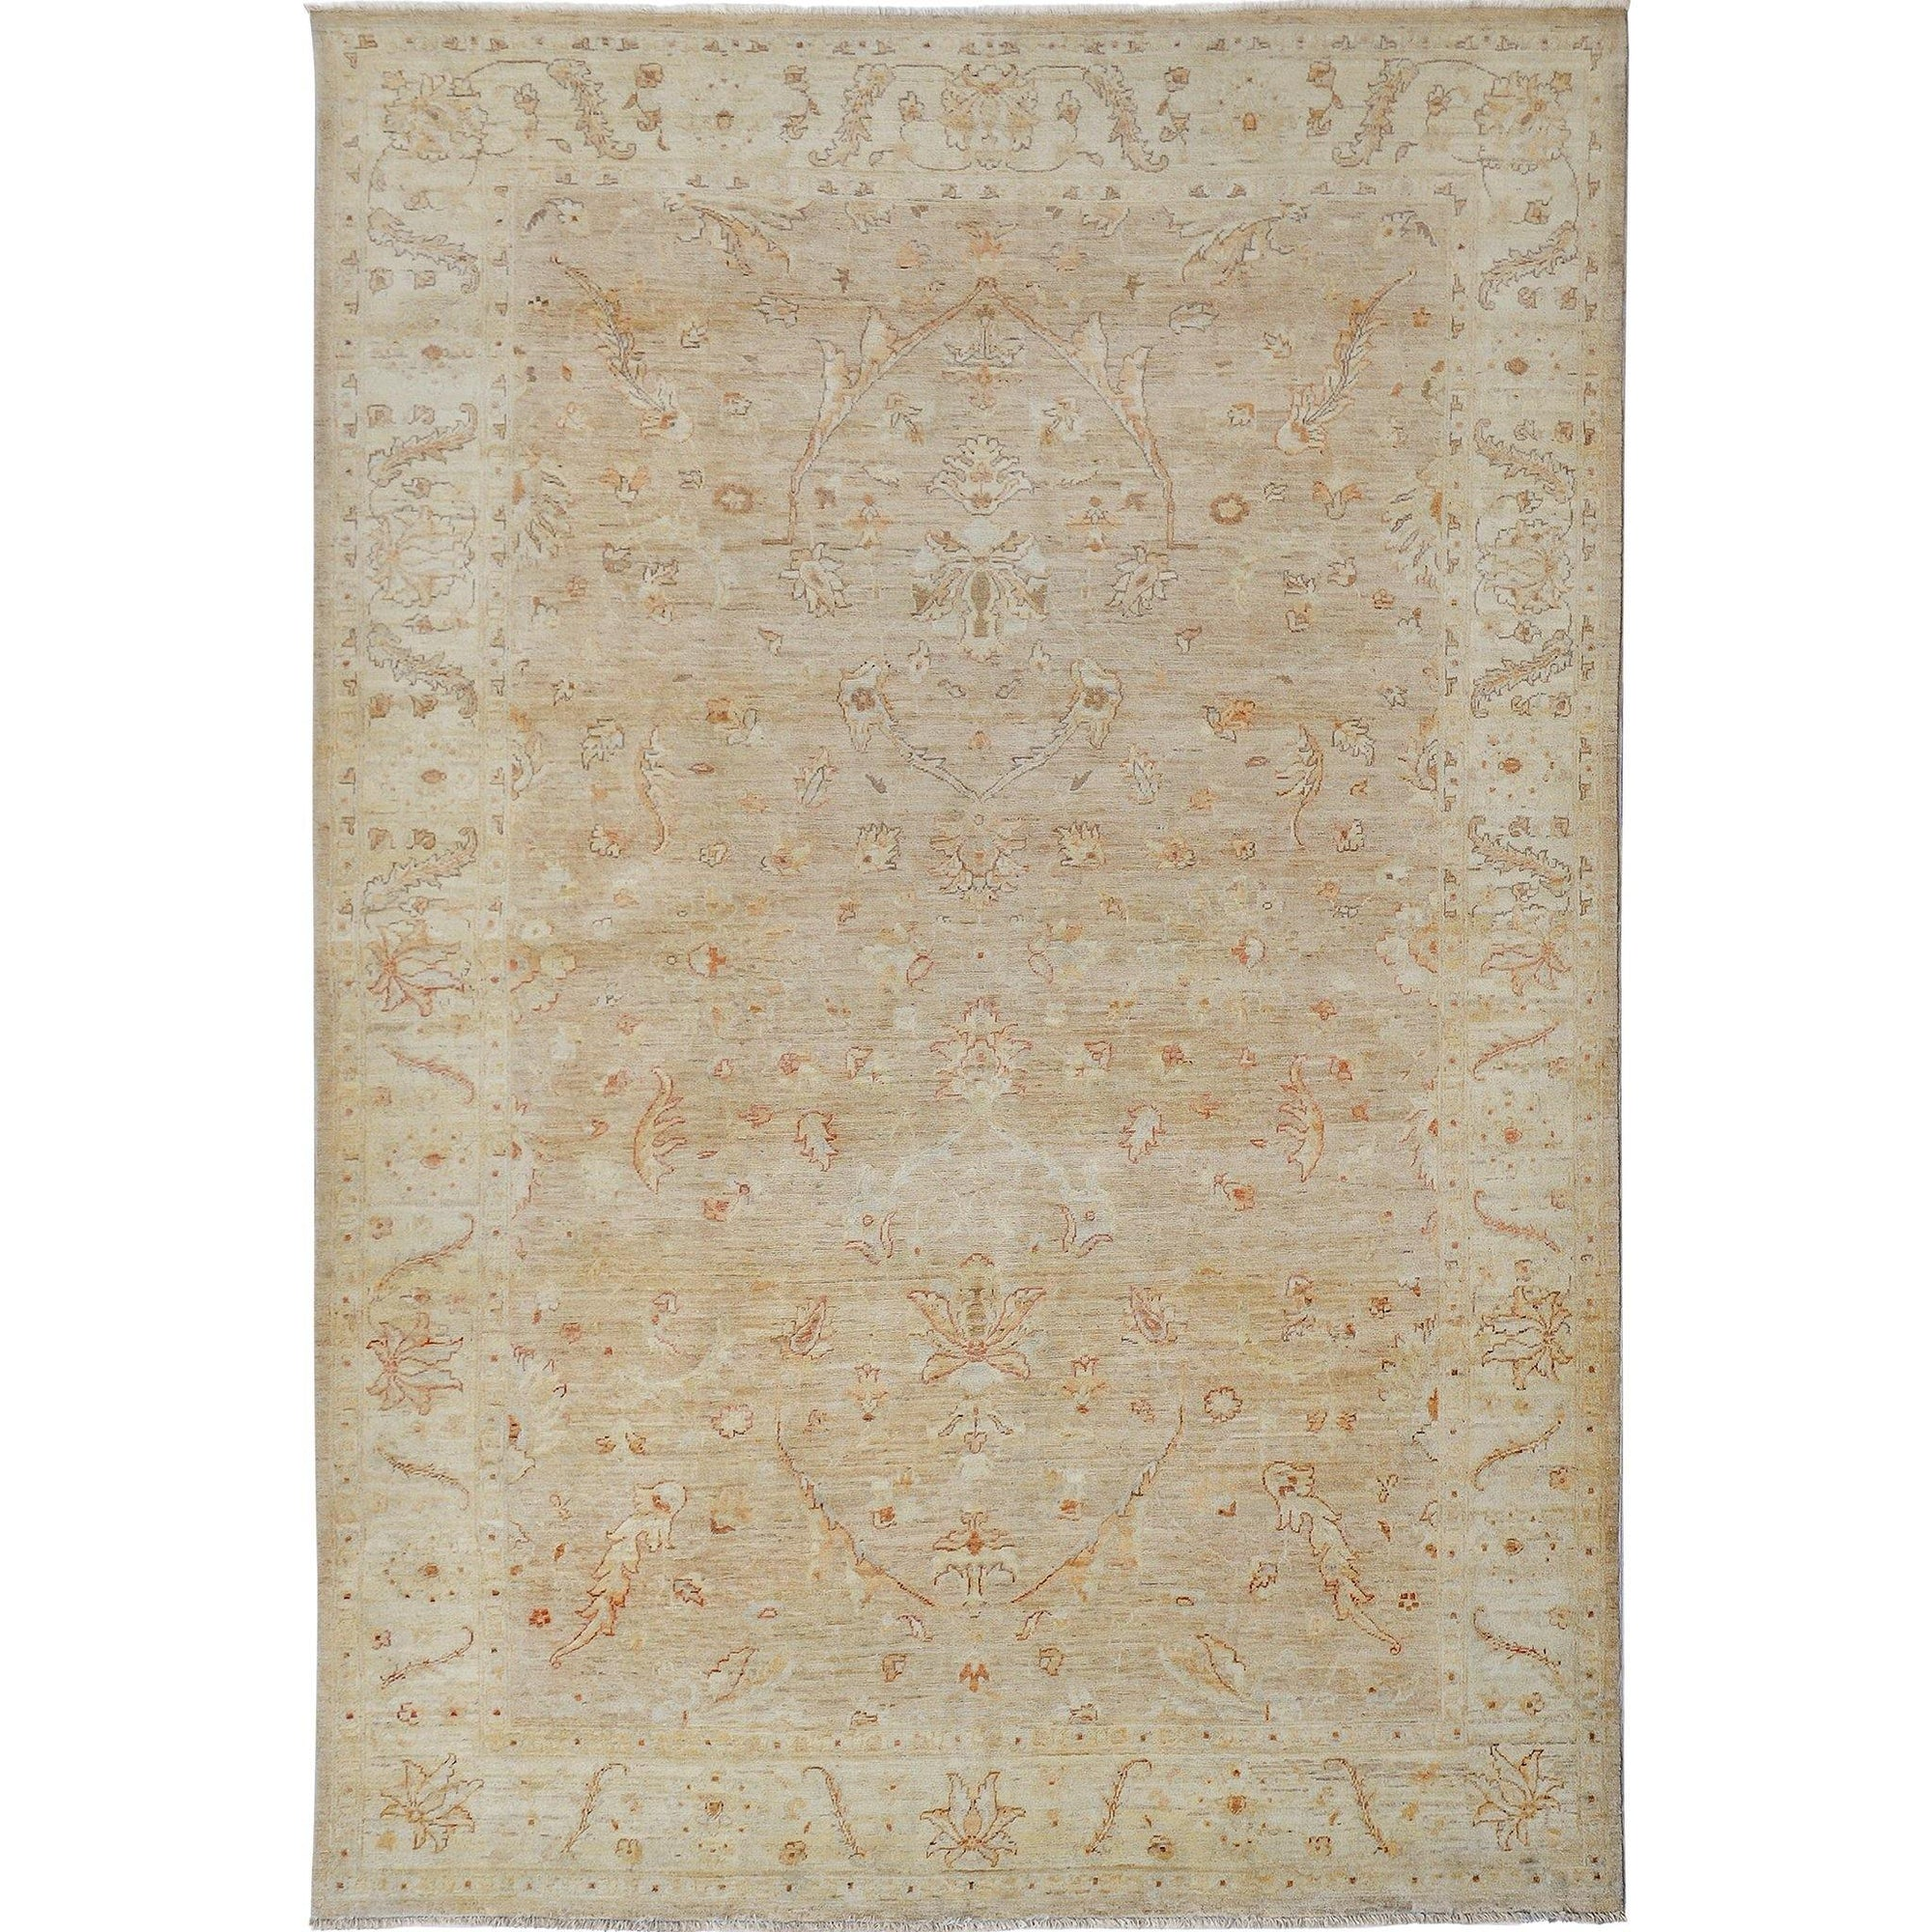 Hand-knotted Colour Reform Wool Rug 203cm x 294cm Persian-Rug | House-of-Haghi | NewMarket | Auckland | NZ | Handmade Persian Rugs | Hand Knotted Persian Rugs